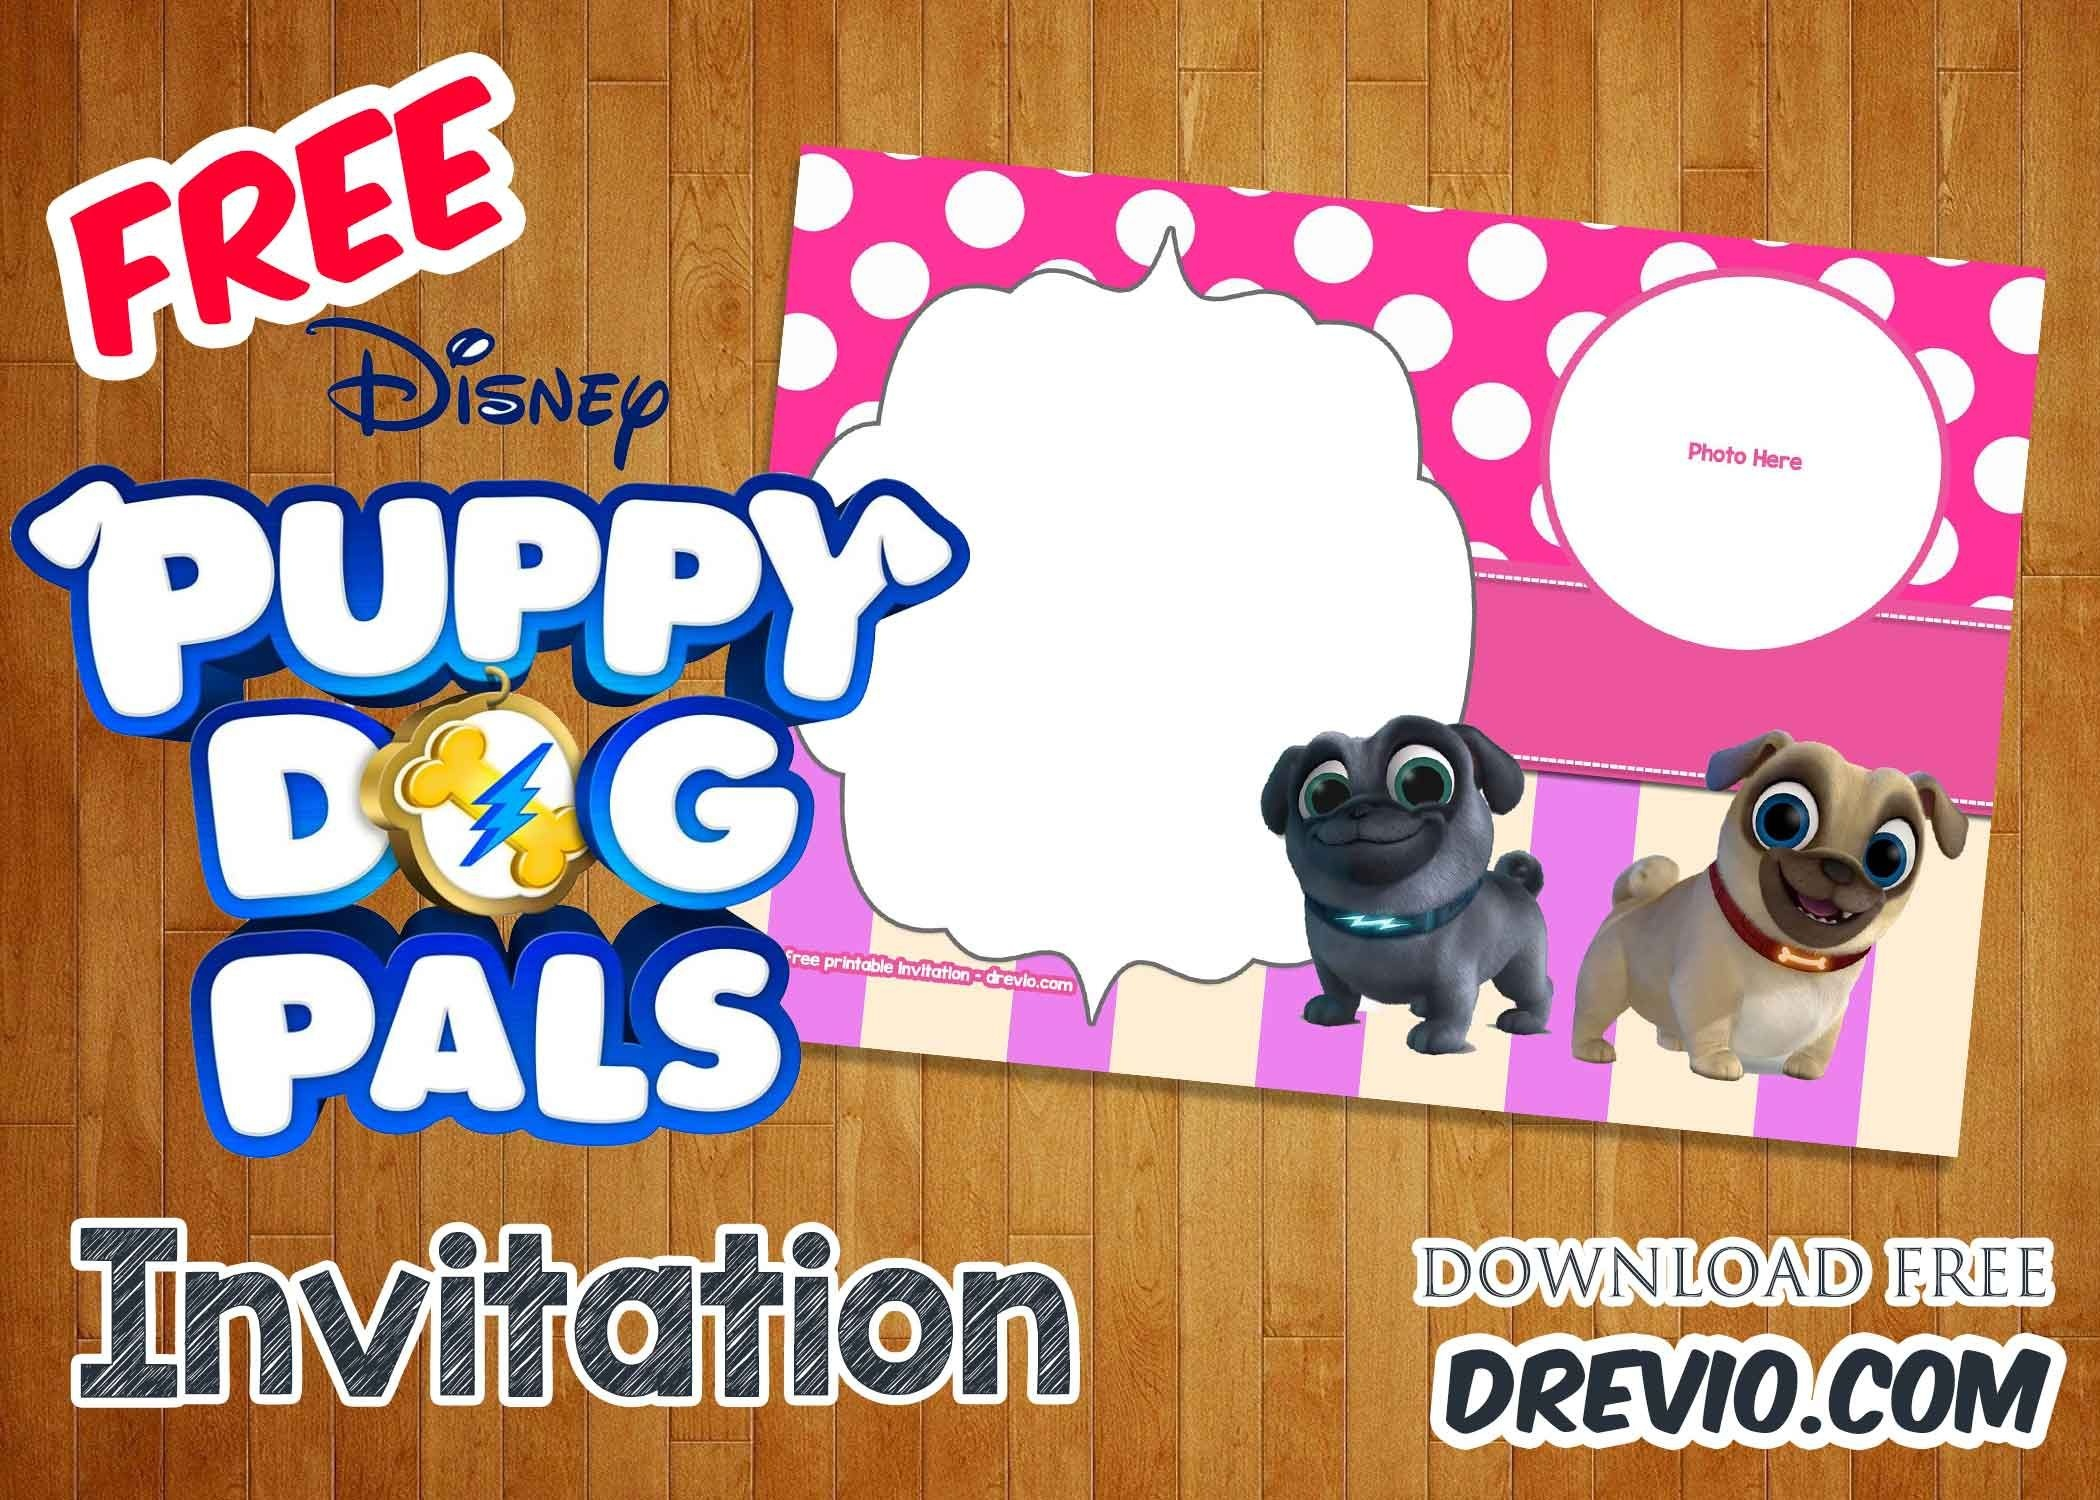 Free Disney Puppy Dog Pals Invitation Templates | Free Printable - Dog Birthday Invitations Free Printable